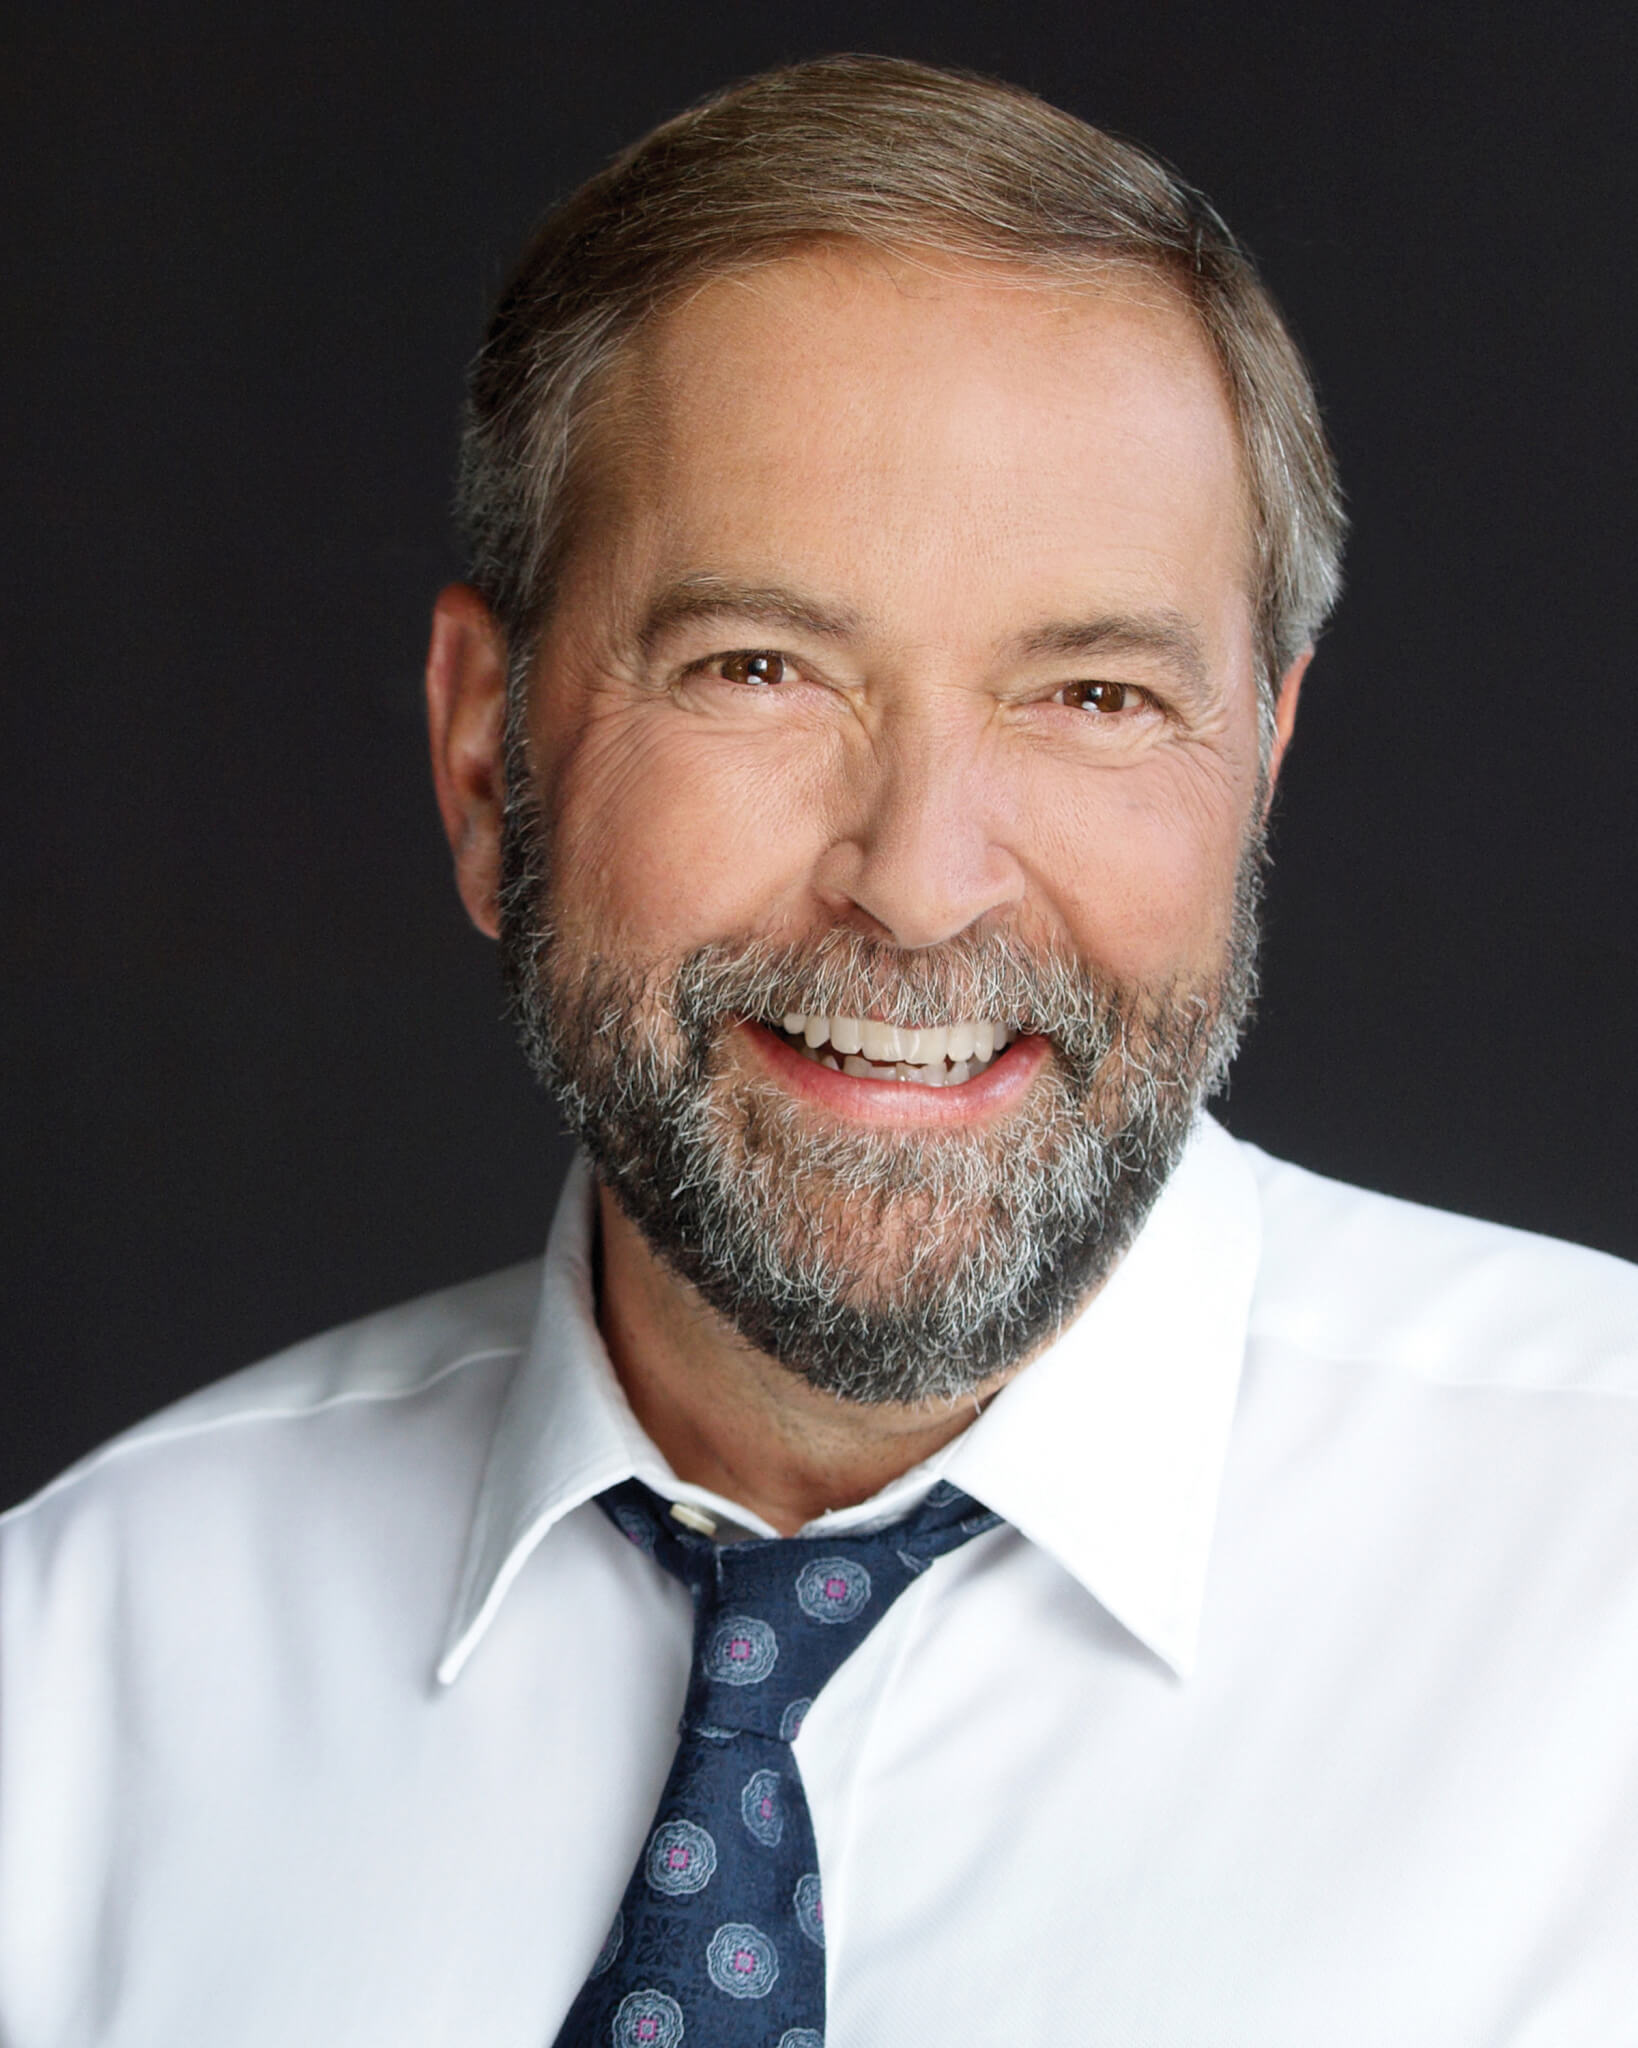 Photograph of Thomas Mulcair courtesy of ndp.ca